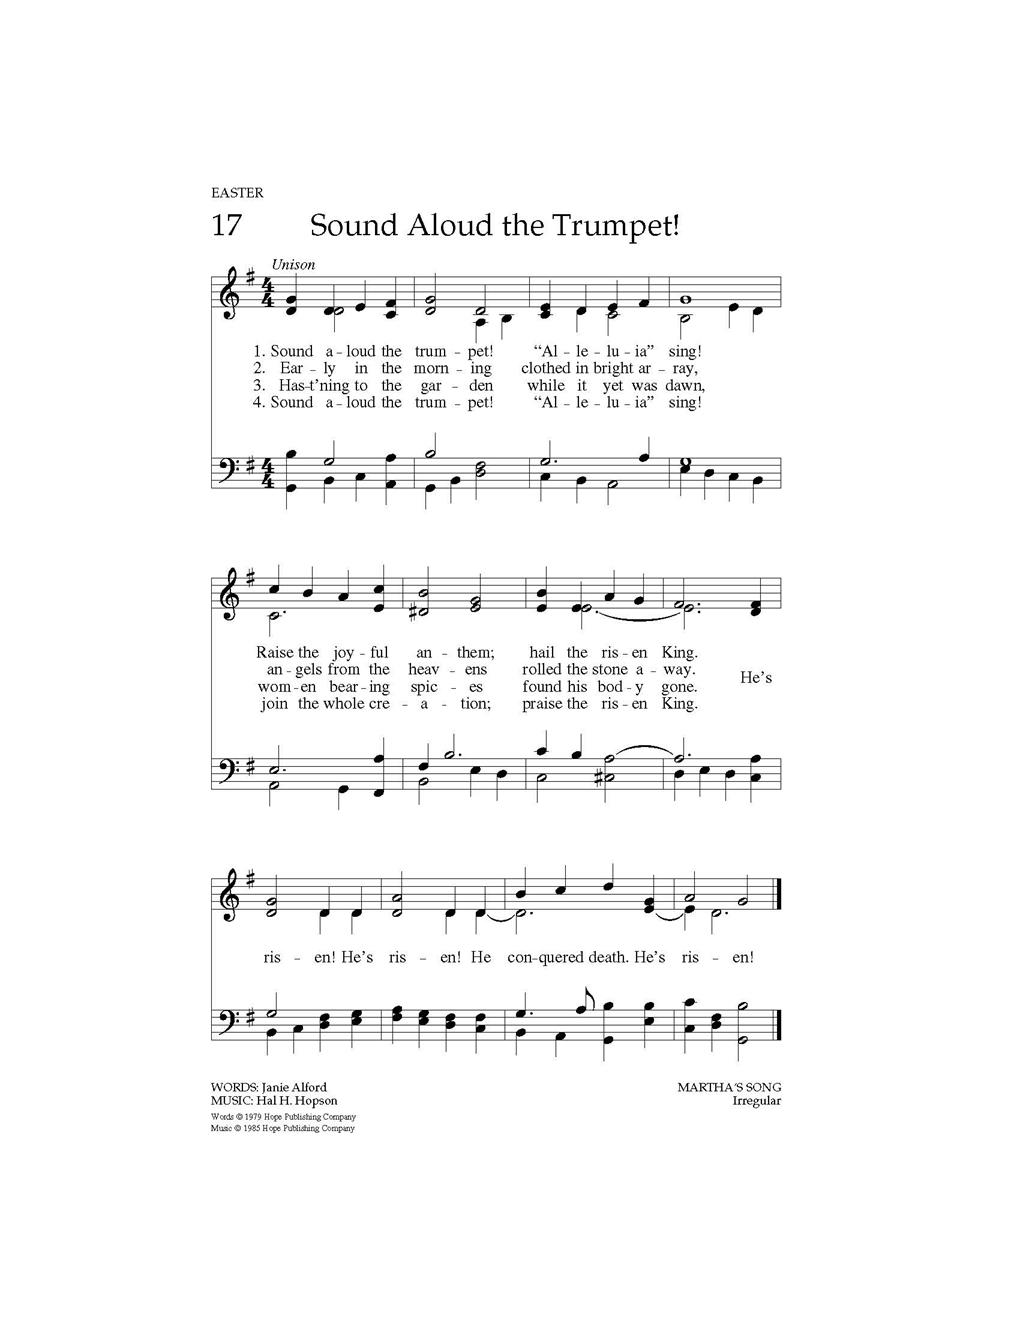 Sound Aloud the Trumpet - Hope Publishing Company